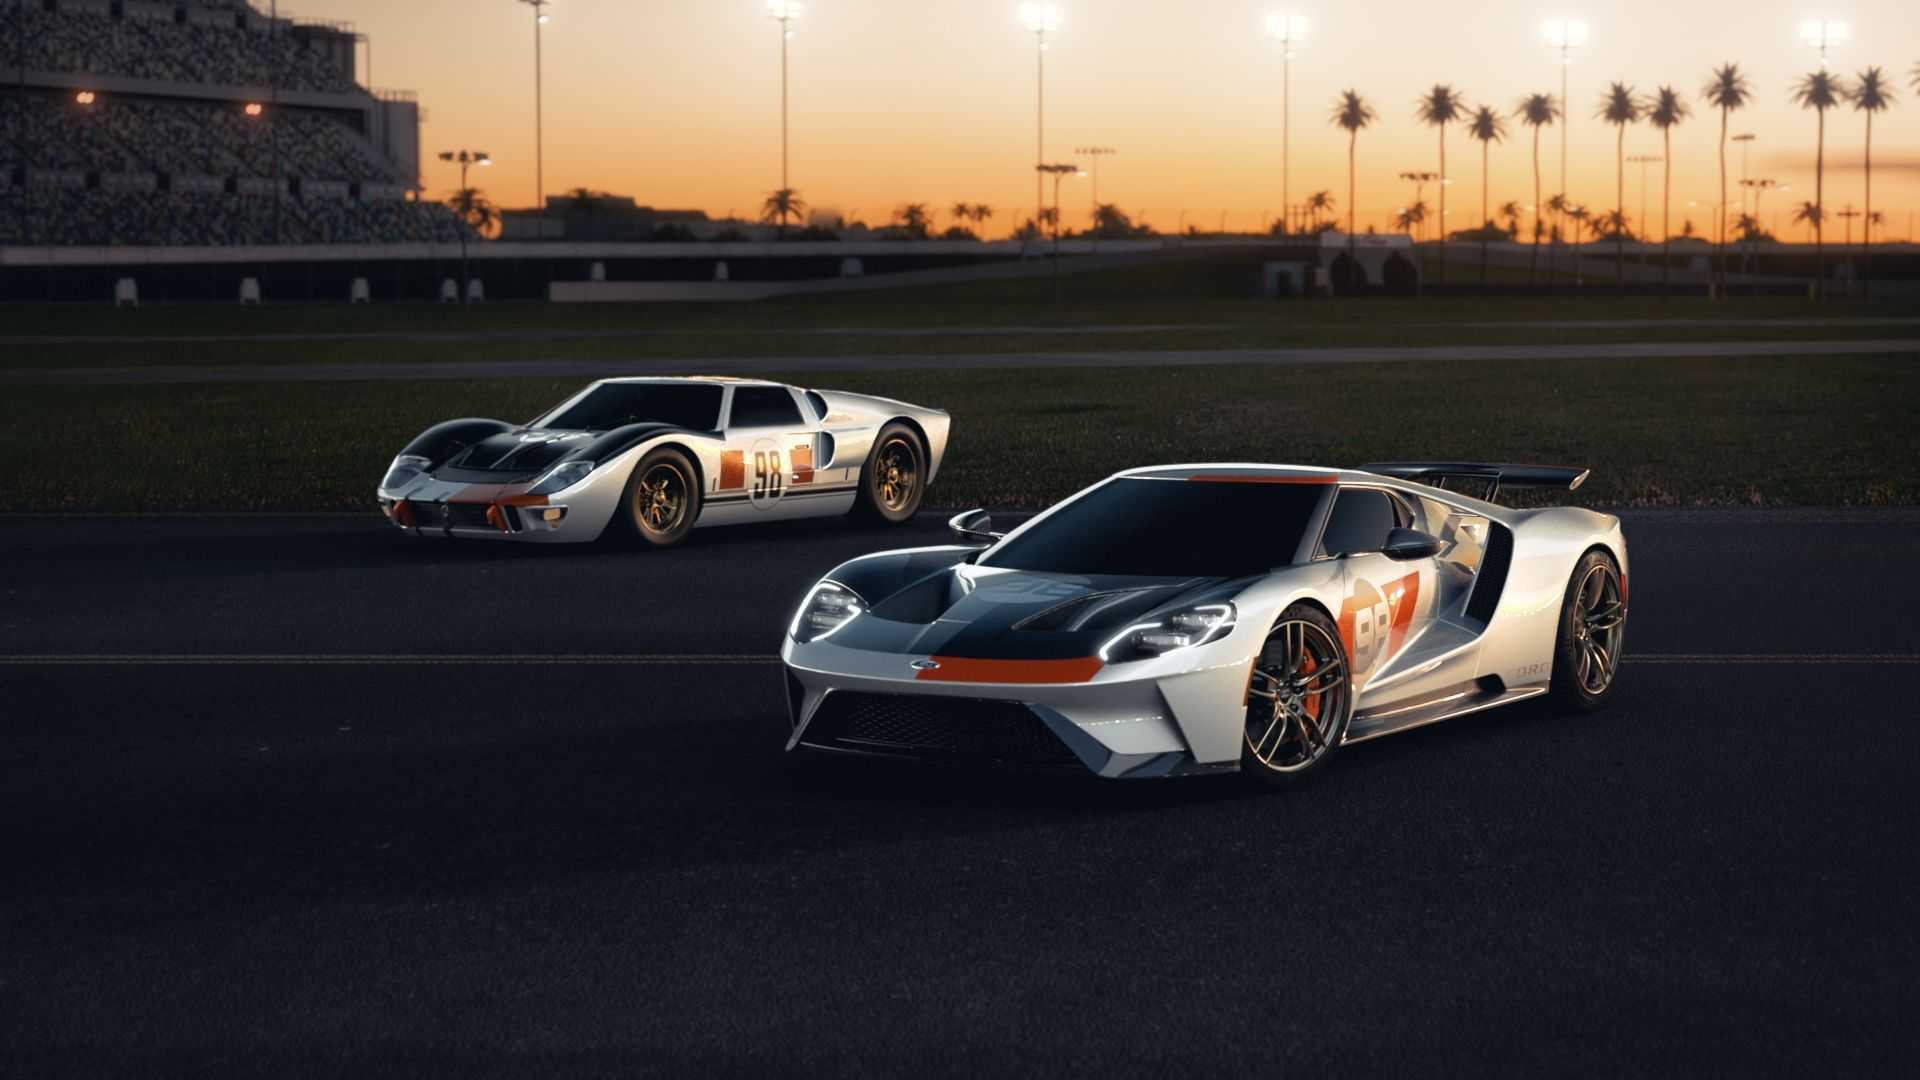 2021 Ford Gt Heritage Edition Celebrates Ken Miles 1966 Daytona Win